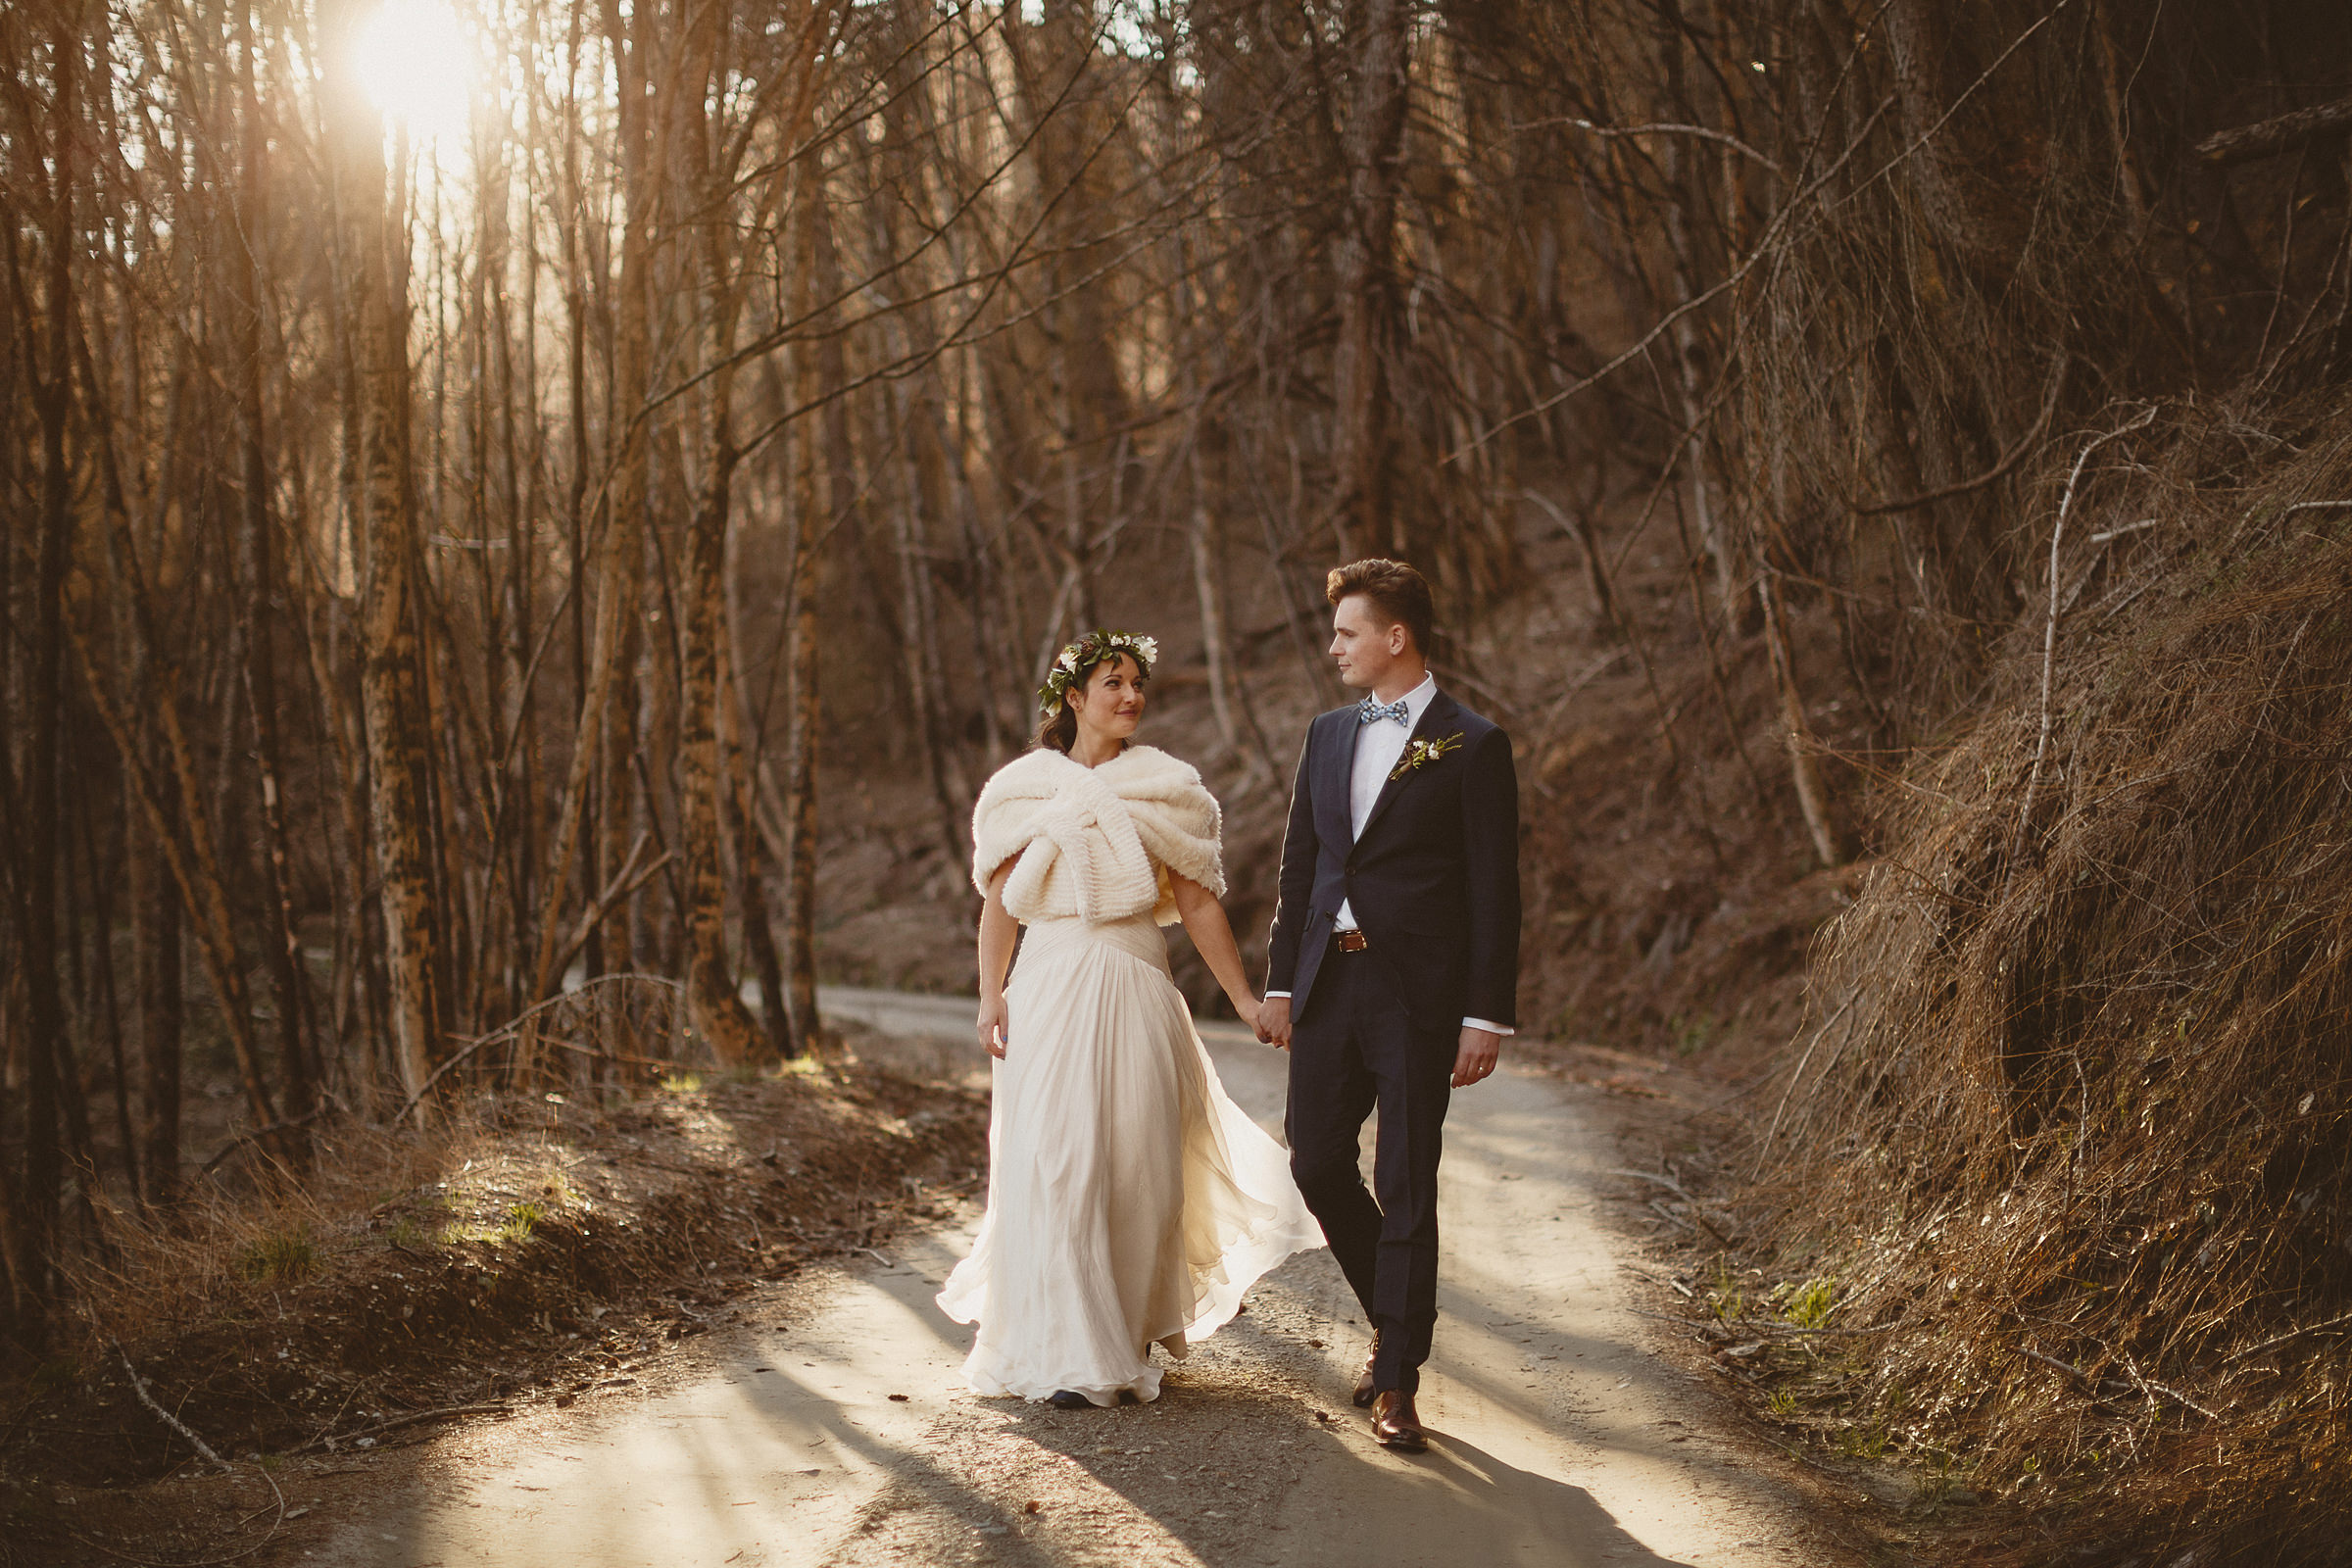 Couple walking down wooded road - photo by Ed Peers Photography